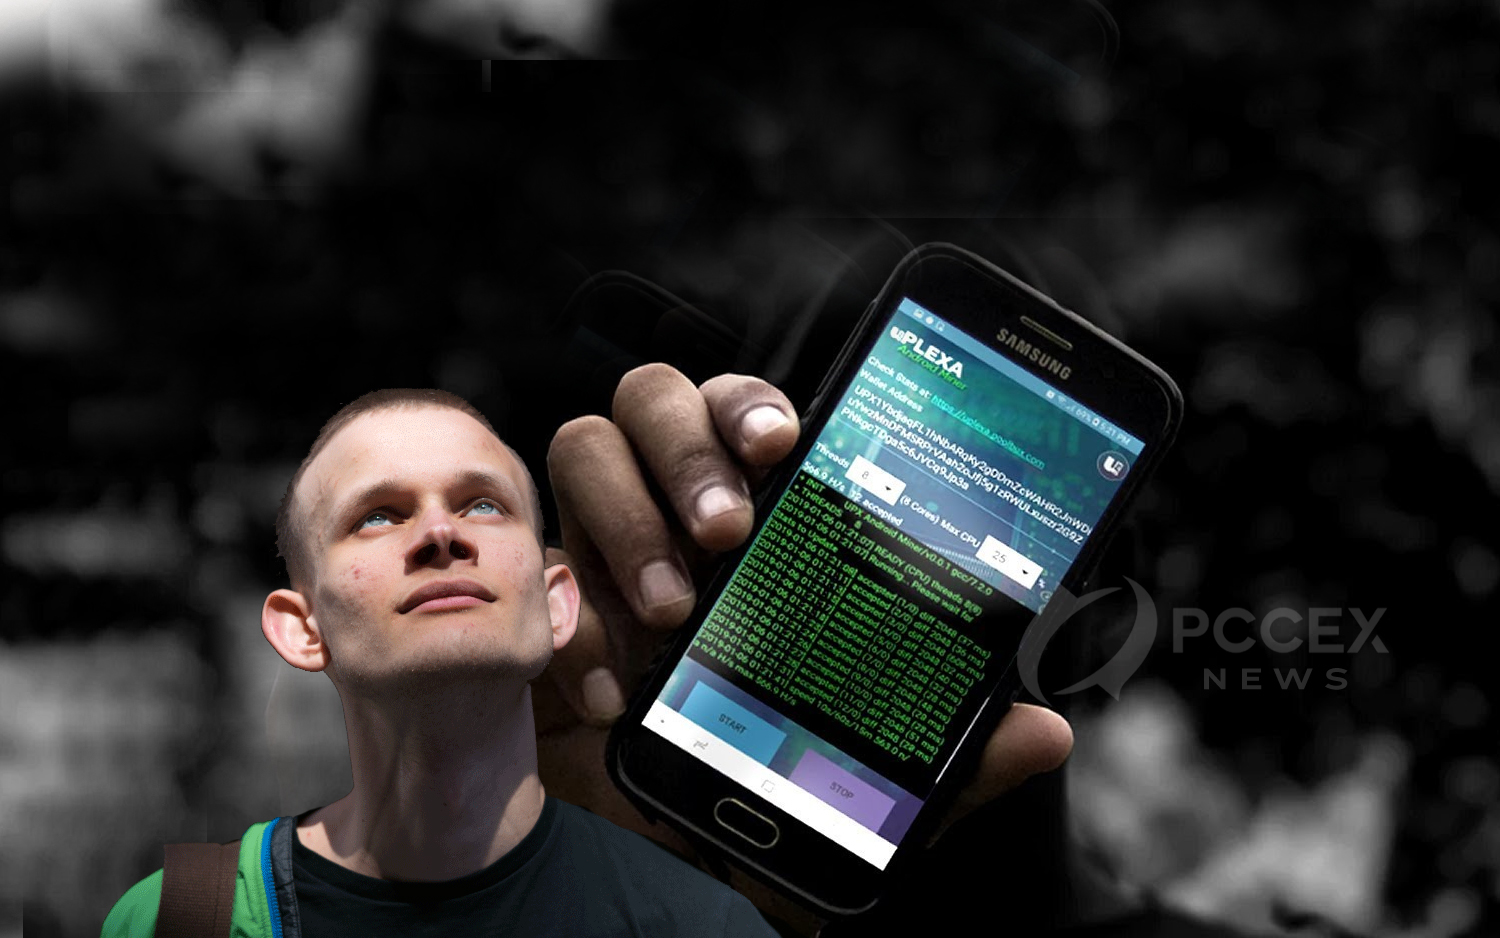 Vitalik Buterin Says Phone Mining Is A 'Fool's Game'